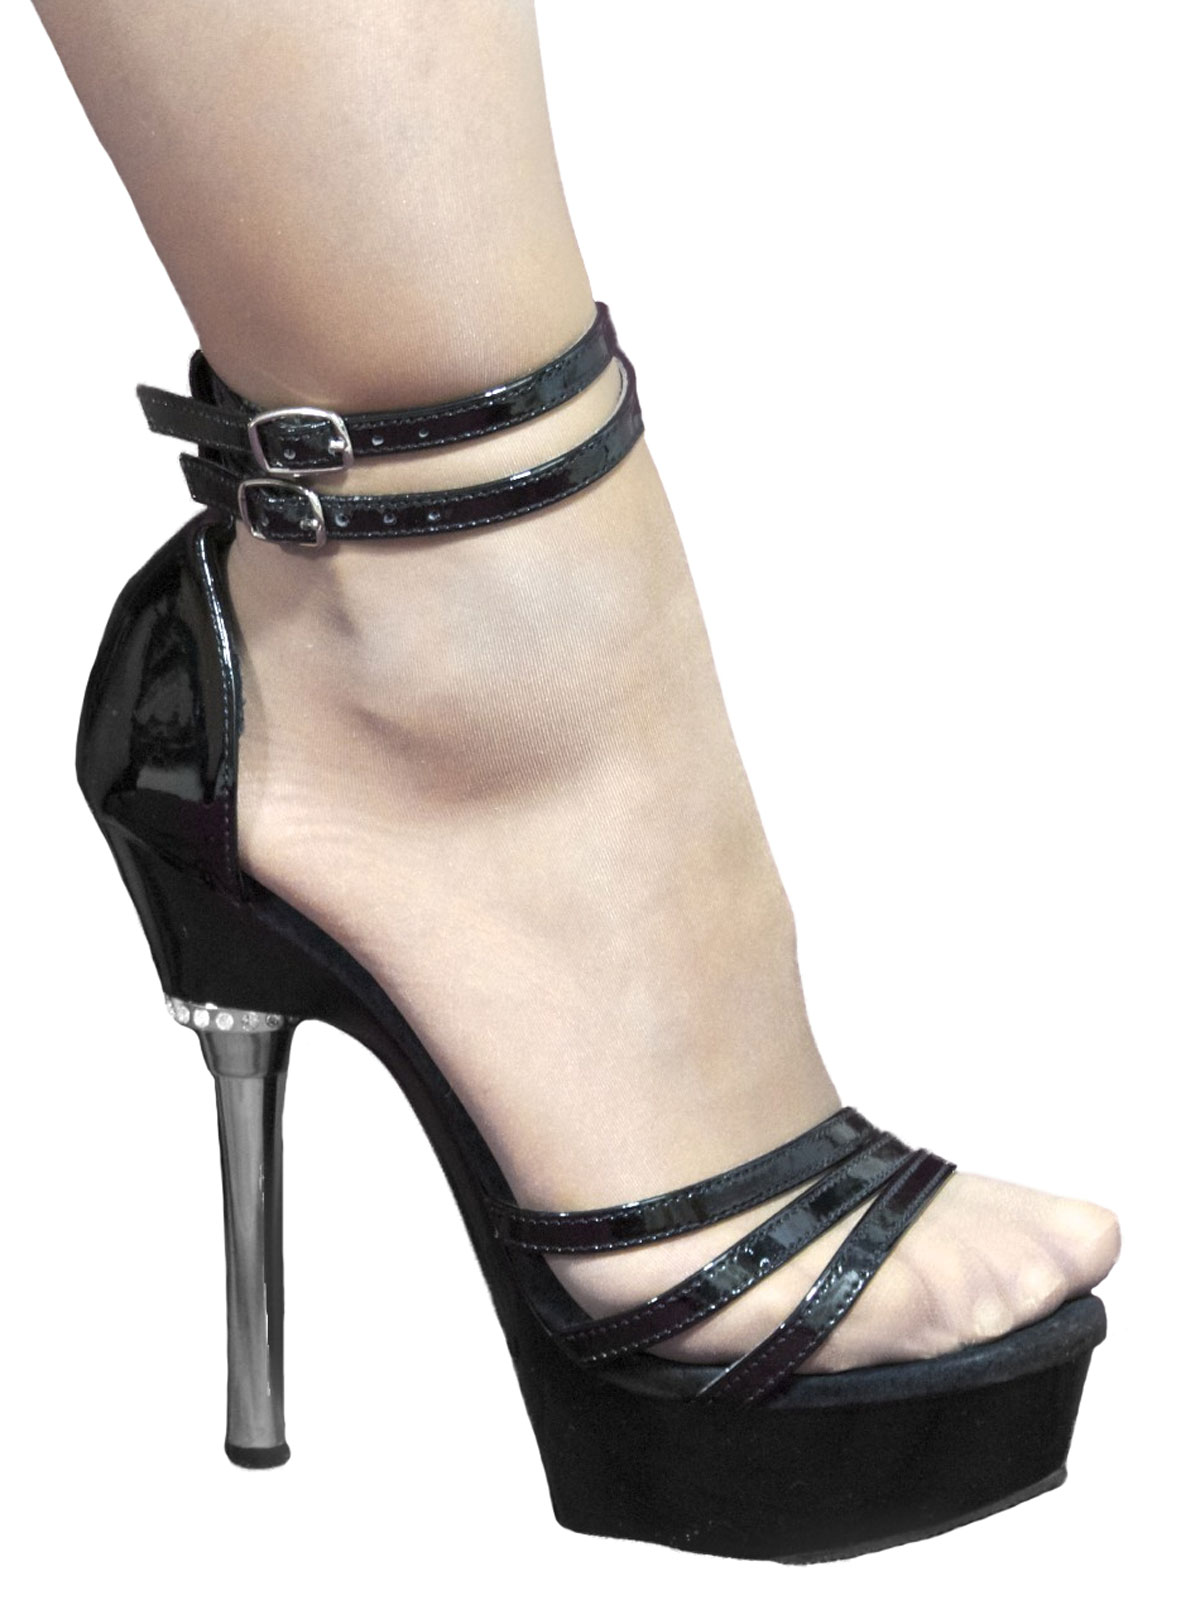 Black Patent High Heel Shoes Uk